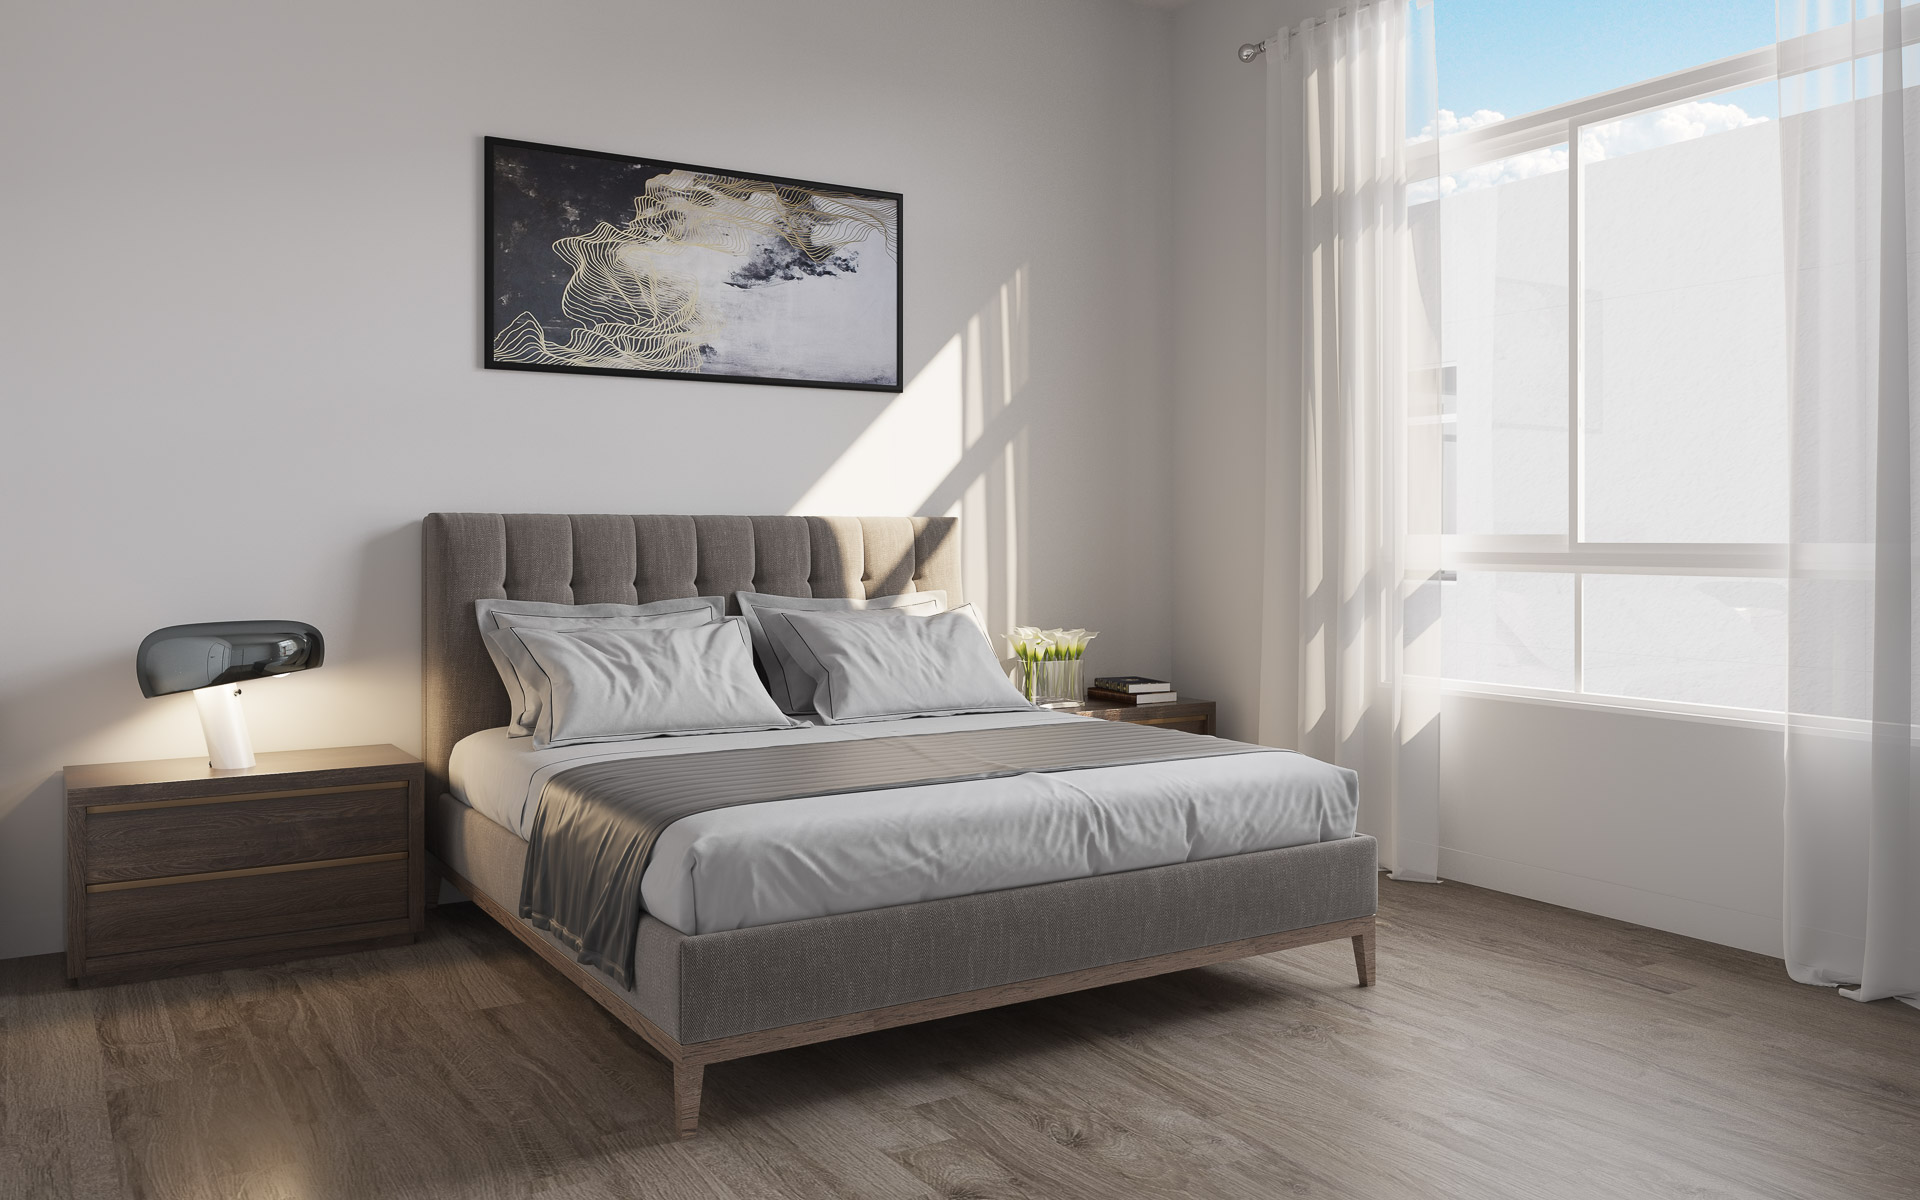 TheAsher_Interior_UnitBedroom_Cam1_020719